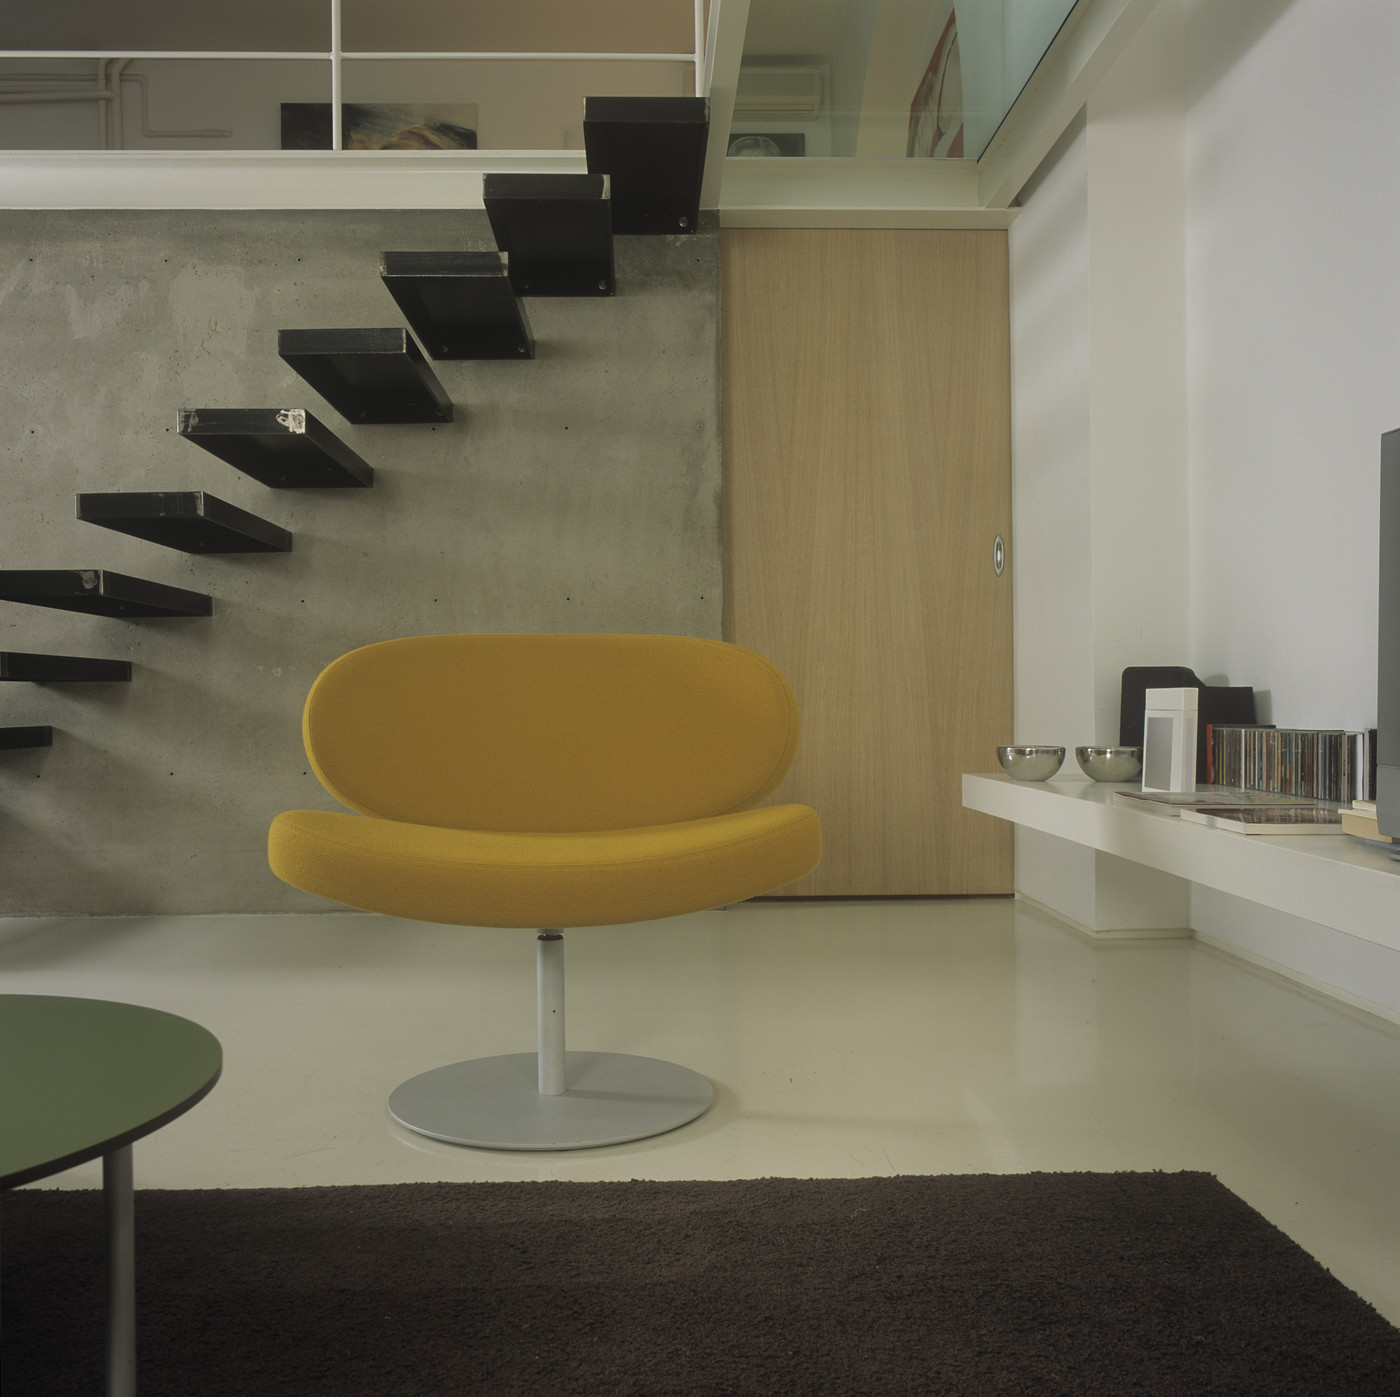 Staircase Design Ideas Remodels Photos: Floating Stairs Photos, Design, Ideas, Remodel, And Decor